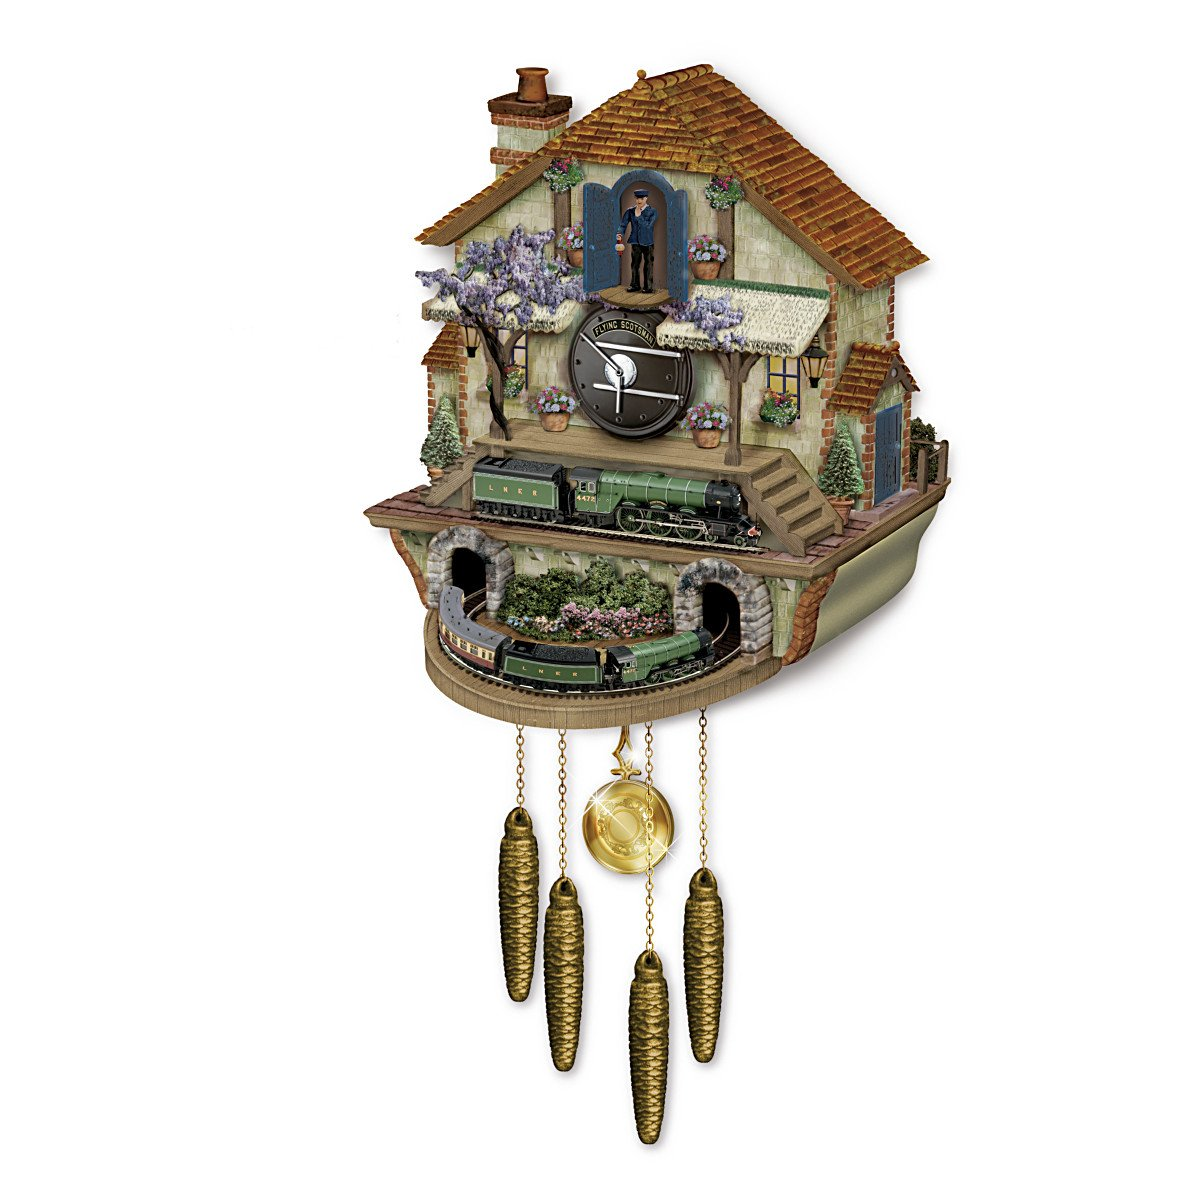 Steam Engine Train Cuckoo Clock: The Flying Scotsman Memories Of Steam by The Bradford Exchange